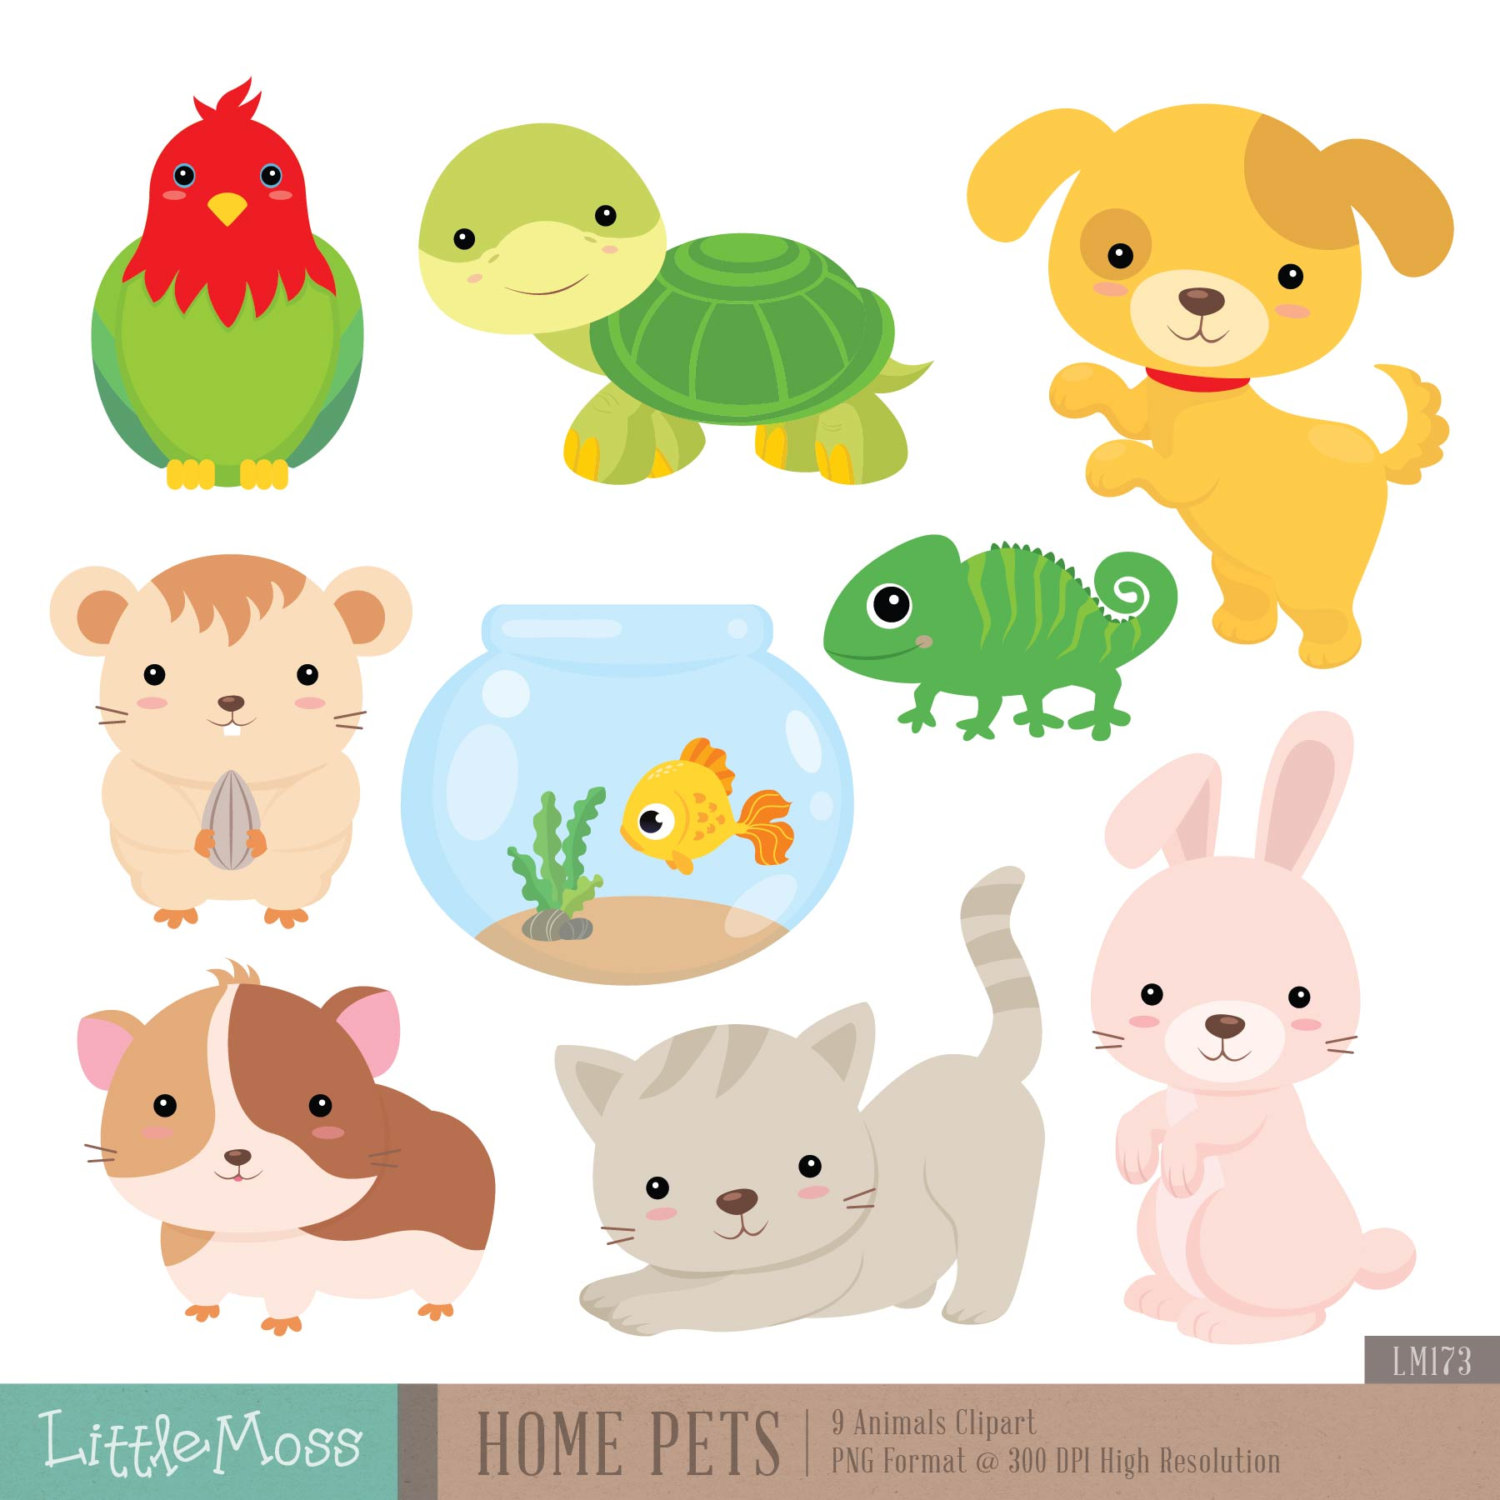 Pet clipart animal home #12 Pet drawings Download clipart